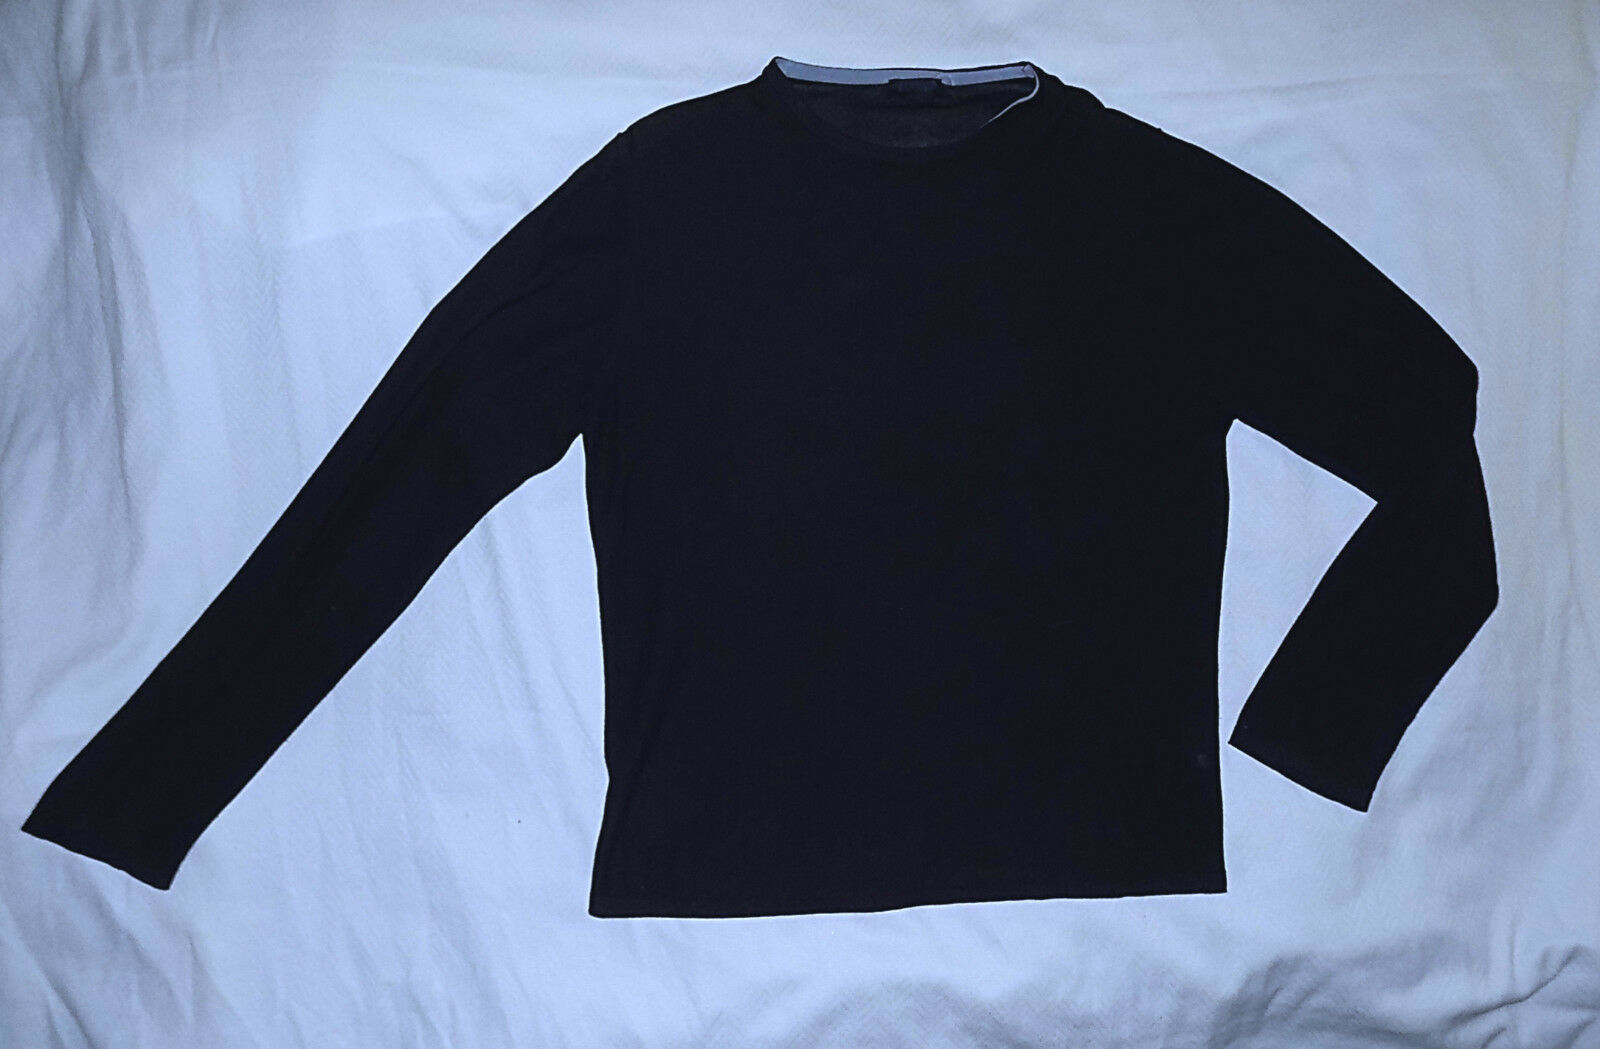 LANVIN Paris -100% Pima Cotton Knit Sweater-Dark Navy-Size Small-Nice-Authentic